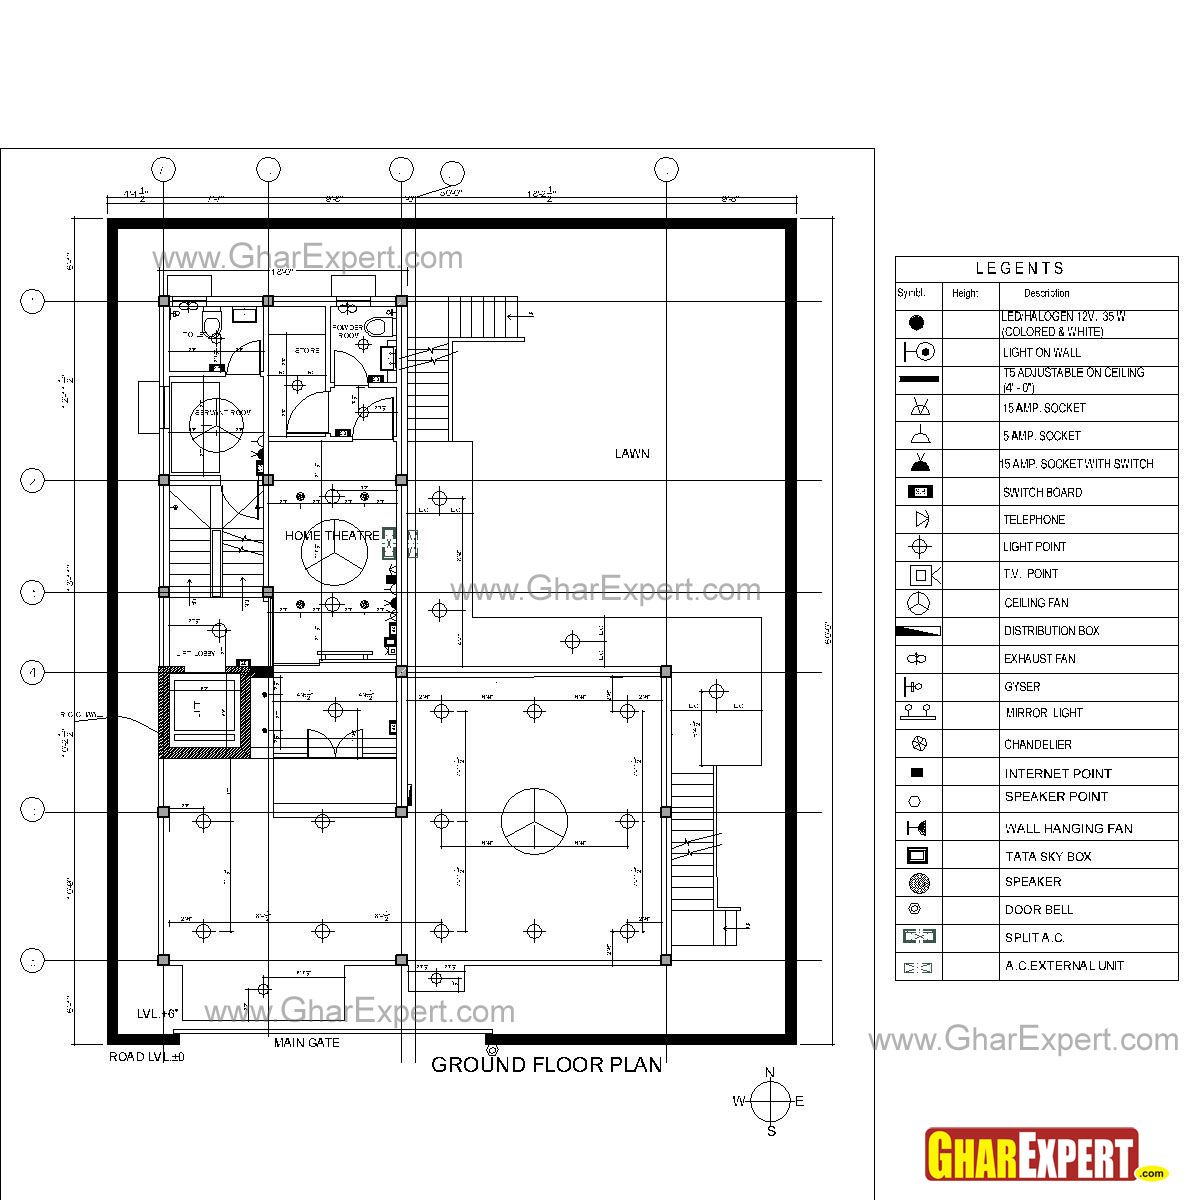 Sample Architectural Structure Plumbing And Electrical Drawings Electrical Layout Plumbing Drawing How To Plan